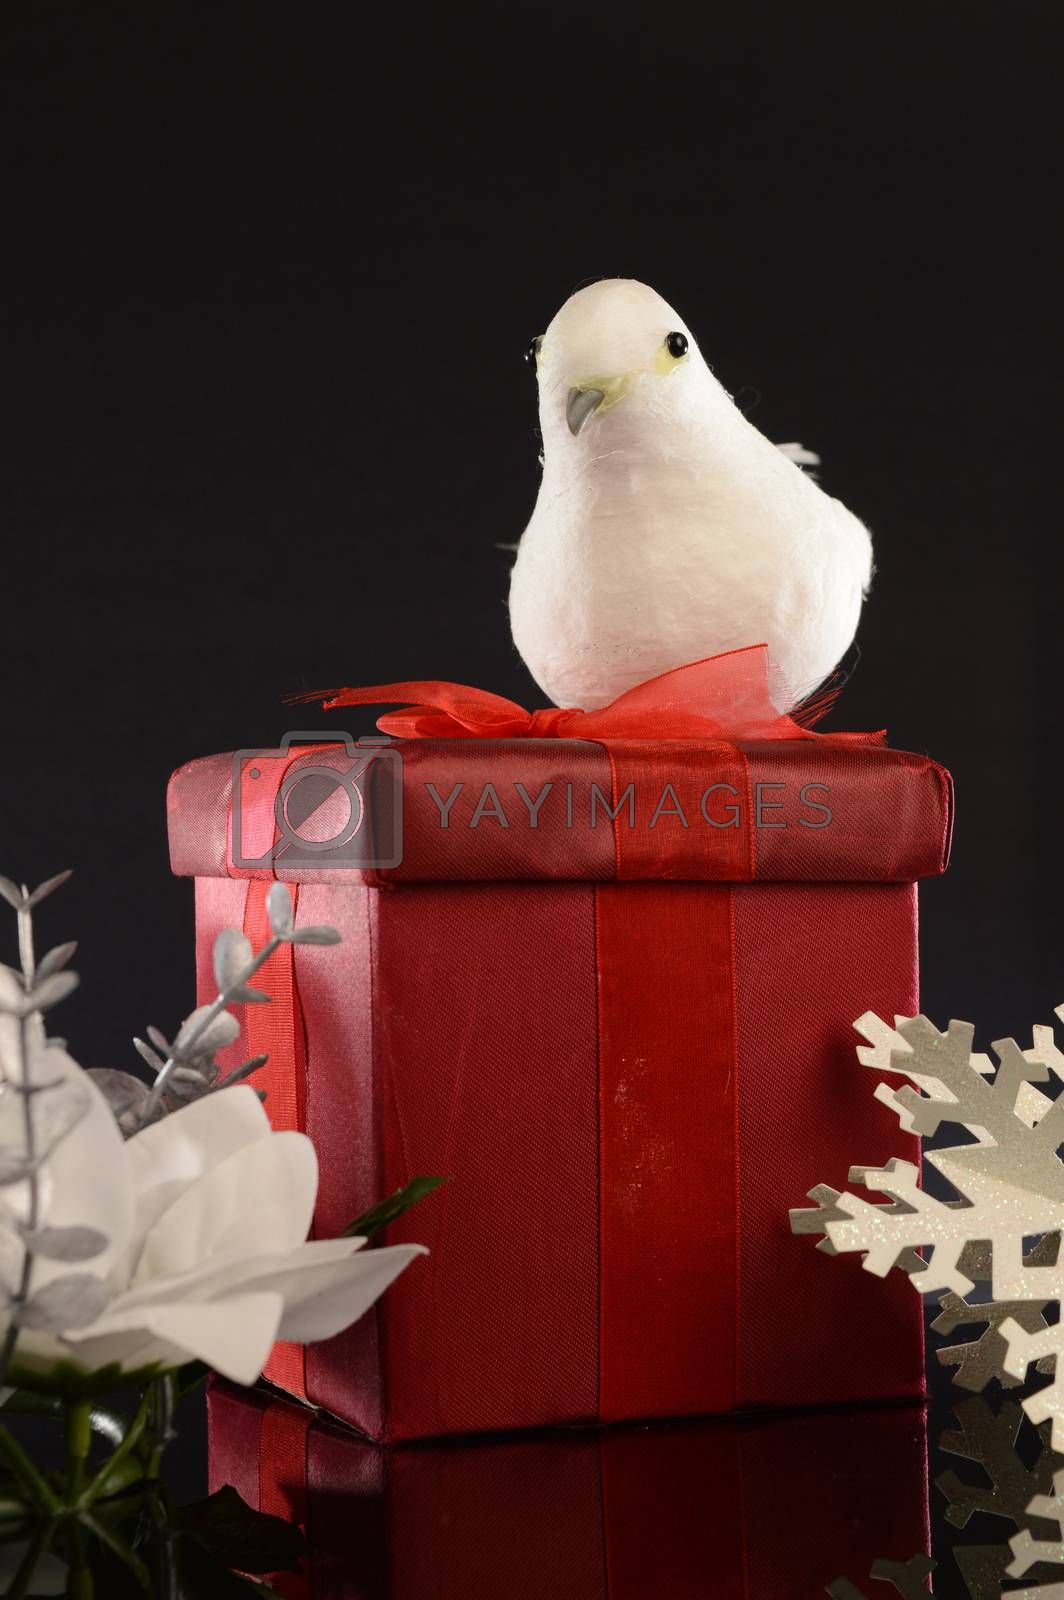 A closeup image of a red Christmas gift with decorative items to compliament the festive season.